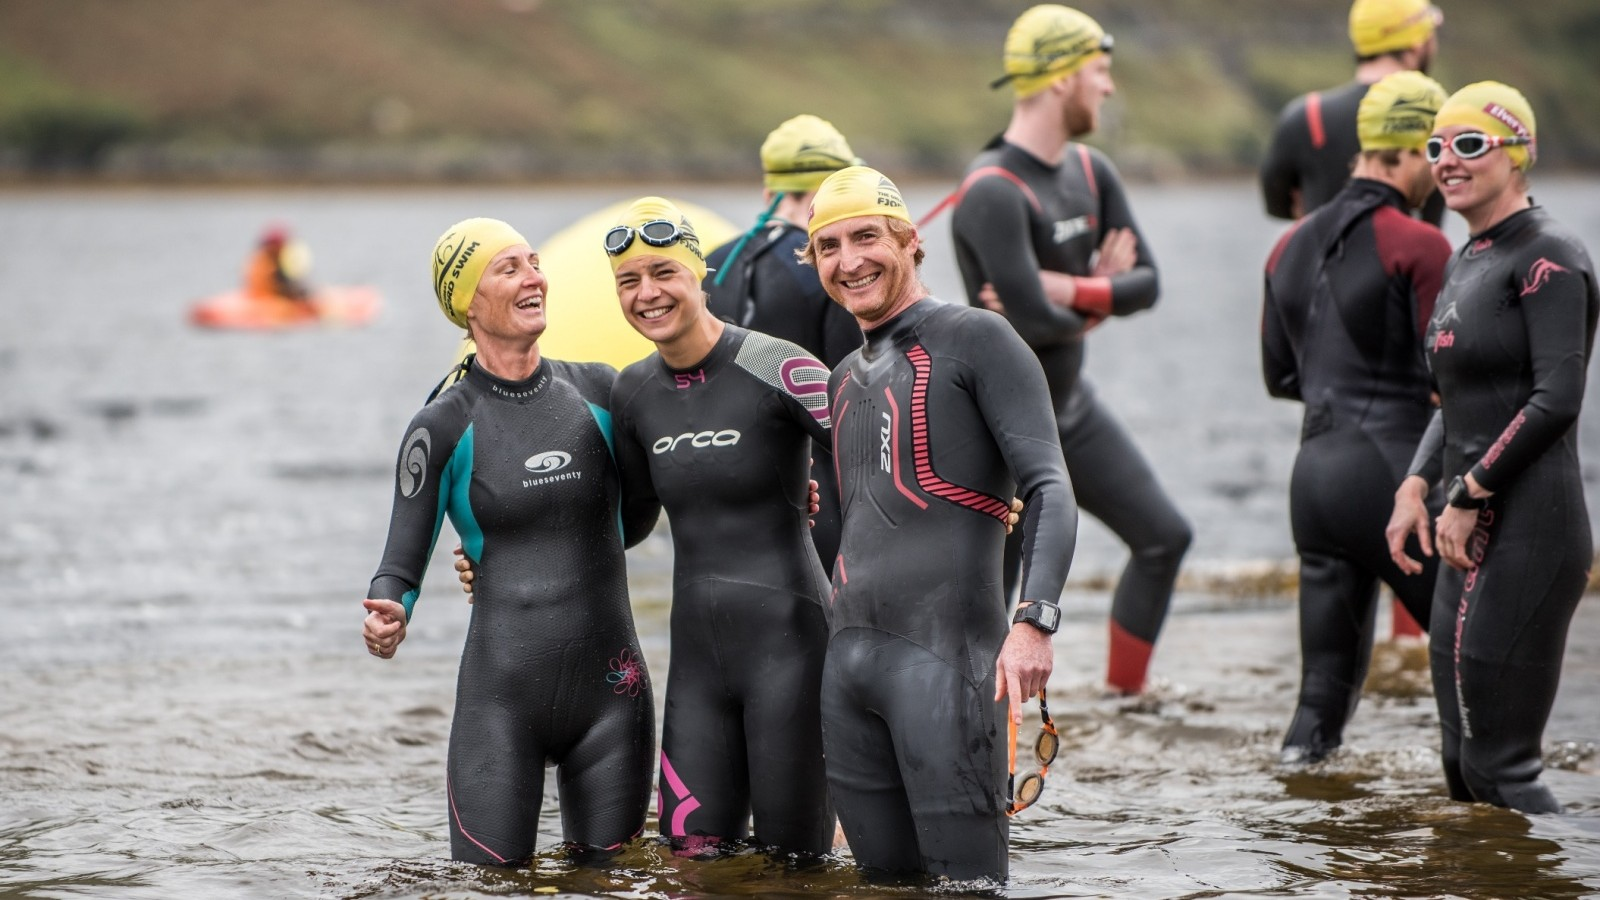 connemara-triathlon-3.jpg